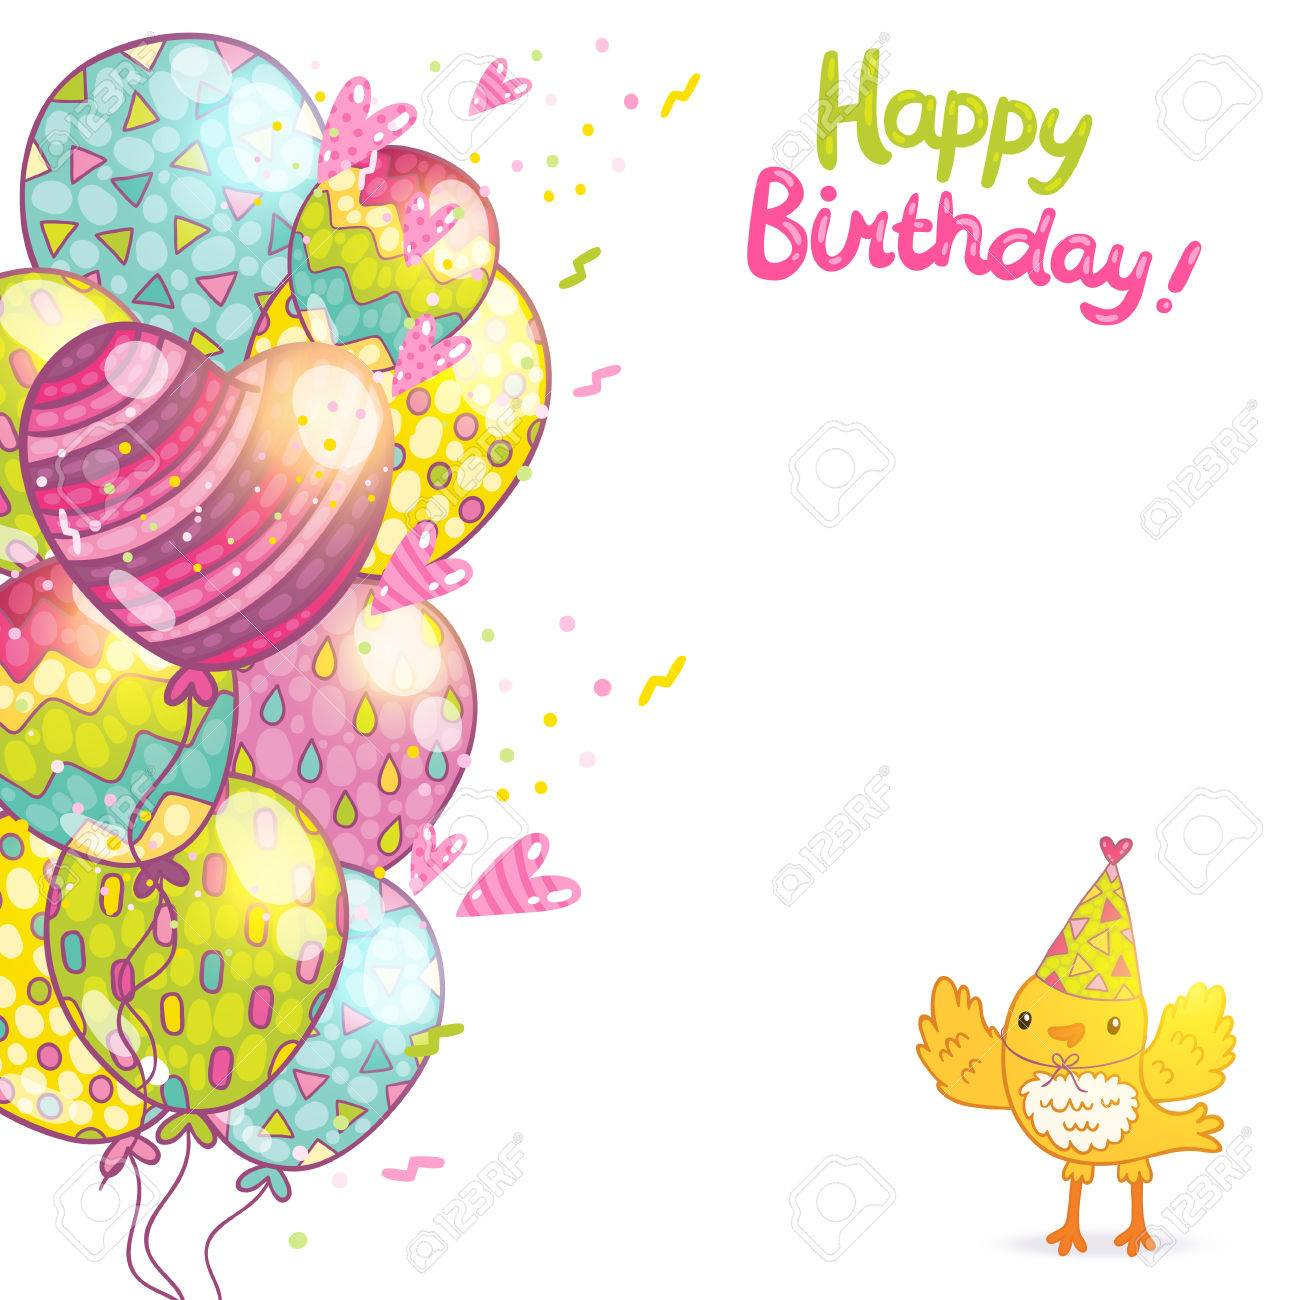 Happy Birthday Card Background With A Bird And Balloons